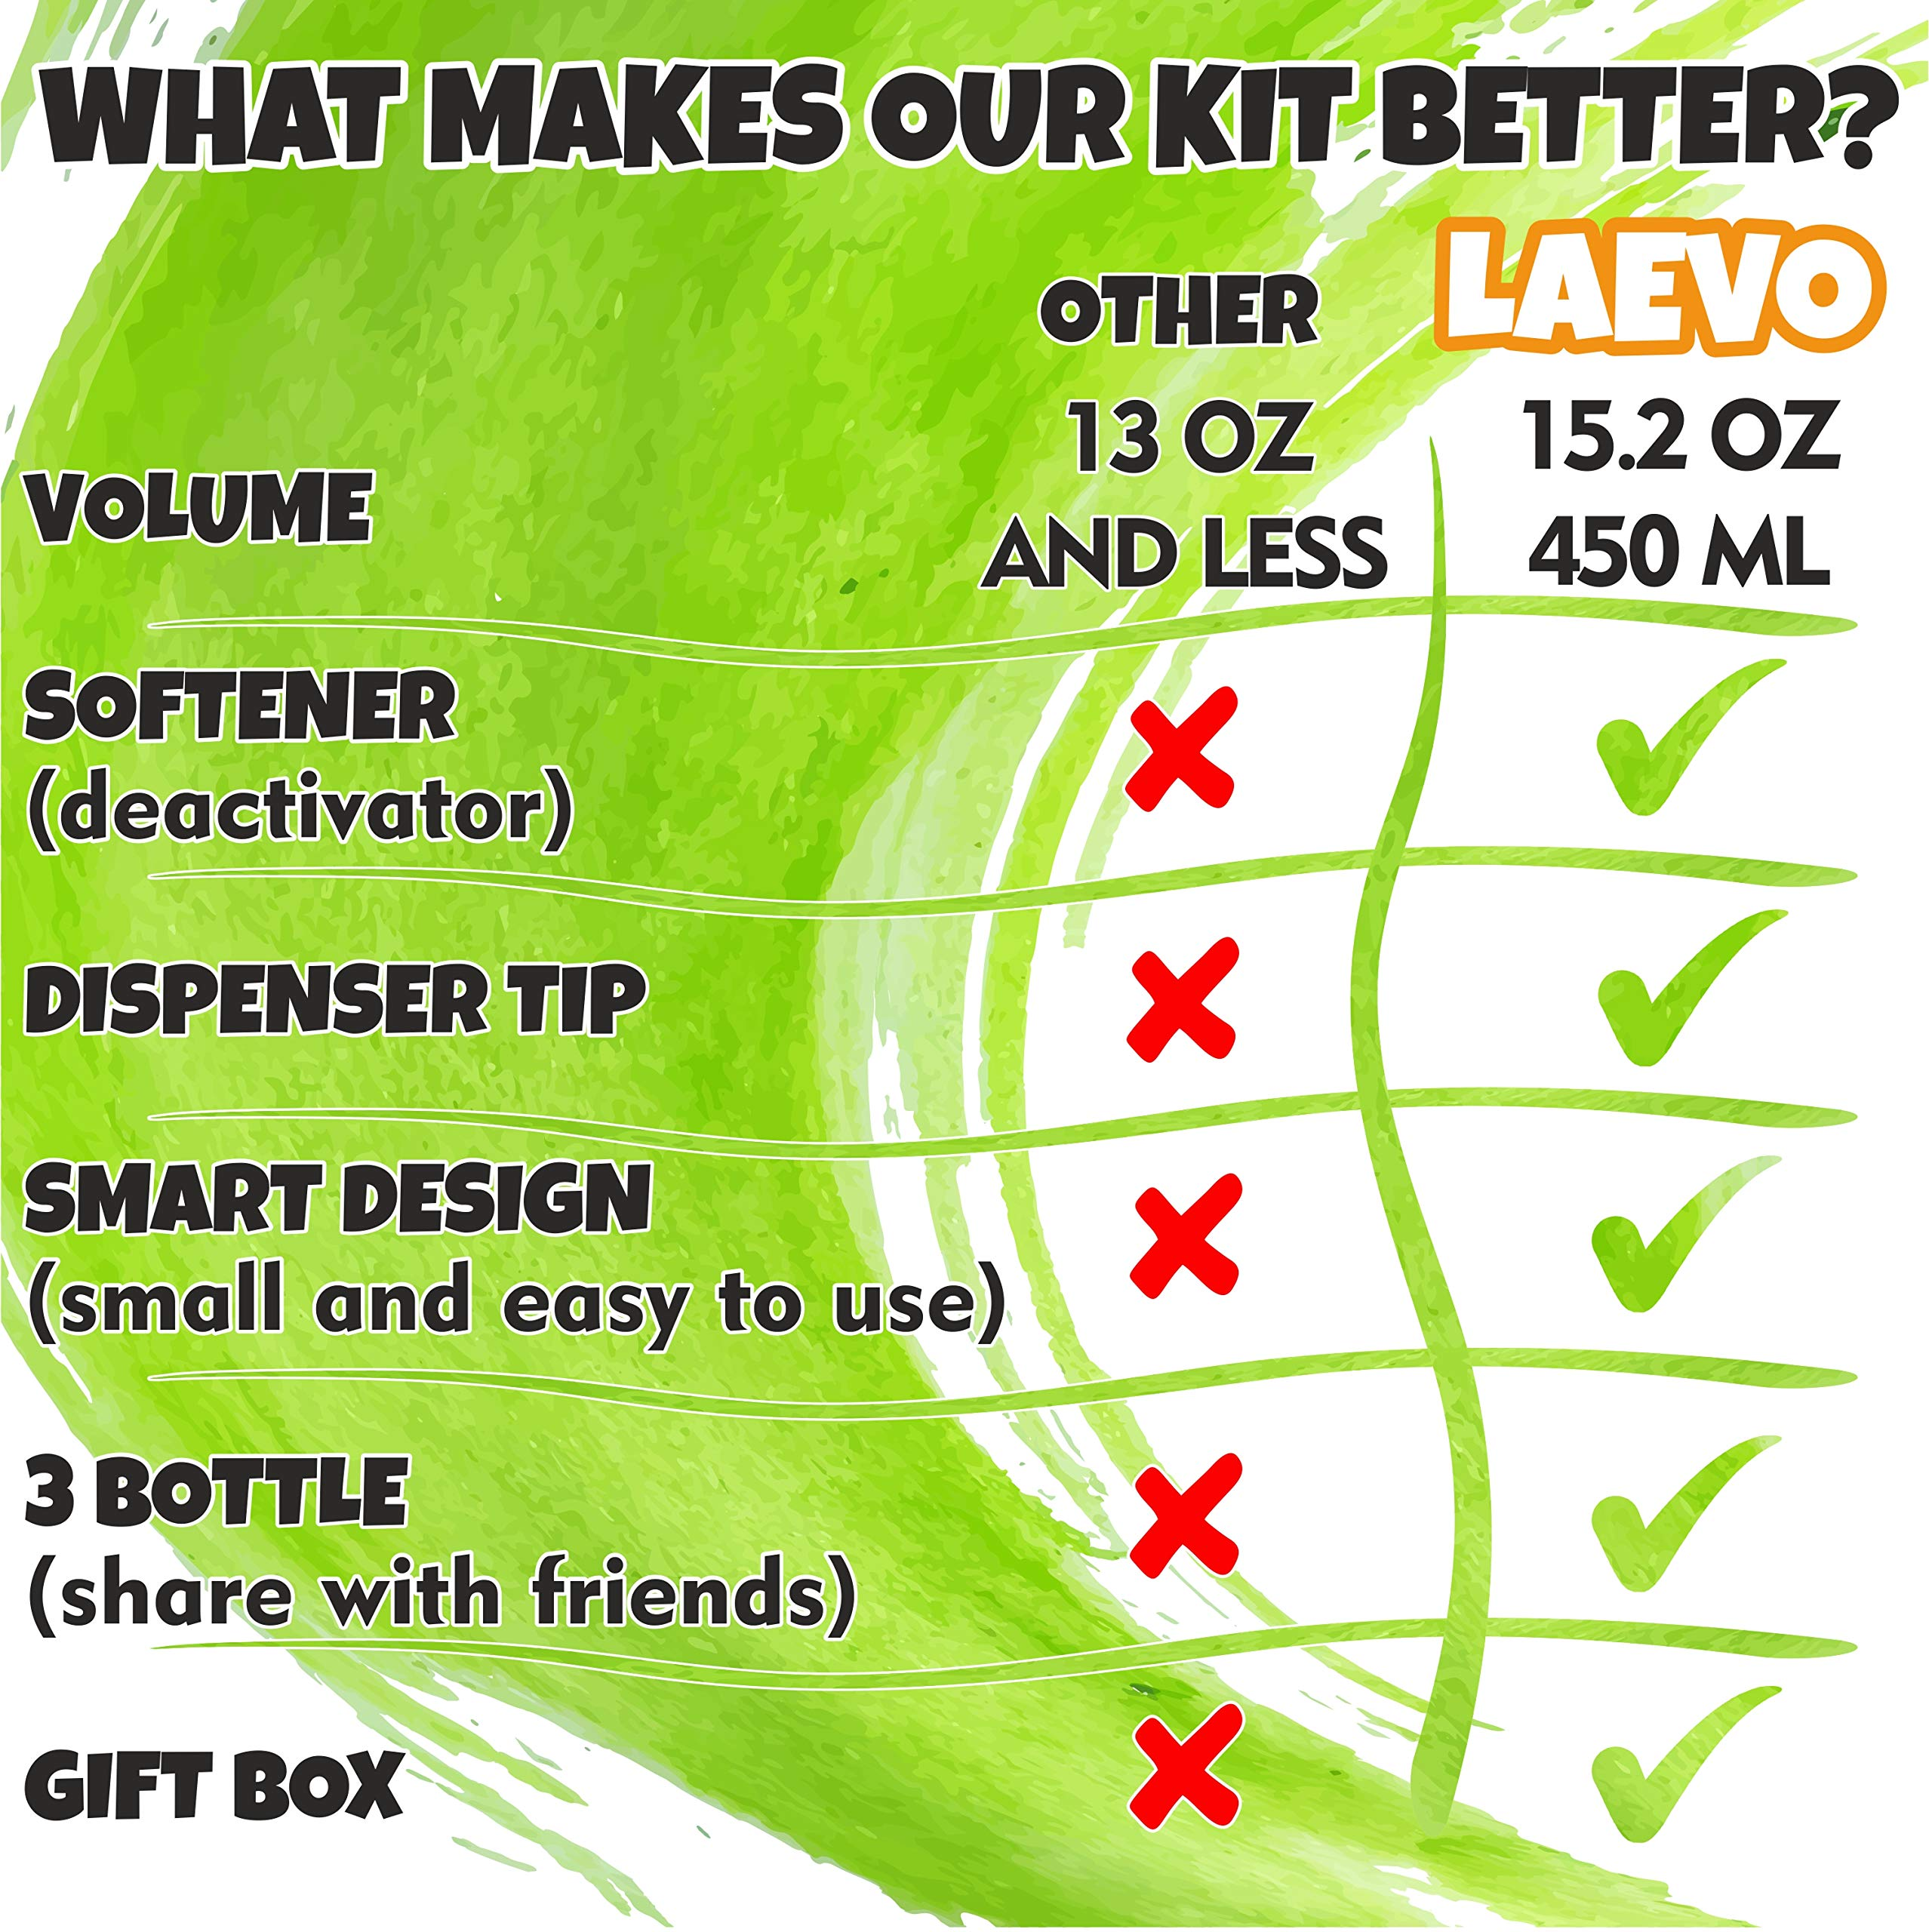 Slime Activator Borax Solution BEST VALUE KIT [15.2 oz] + BONUS Deactivator to Save Your Slime - Add to Slime Glue or Elmers Glue - Replaces Contact Solution, Liquid Starch, Saline Solution [450ml] by Laevo Cook (Image #4)